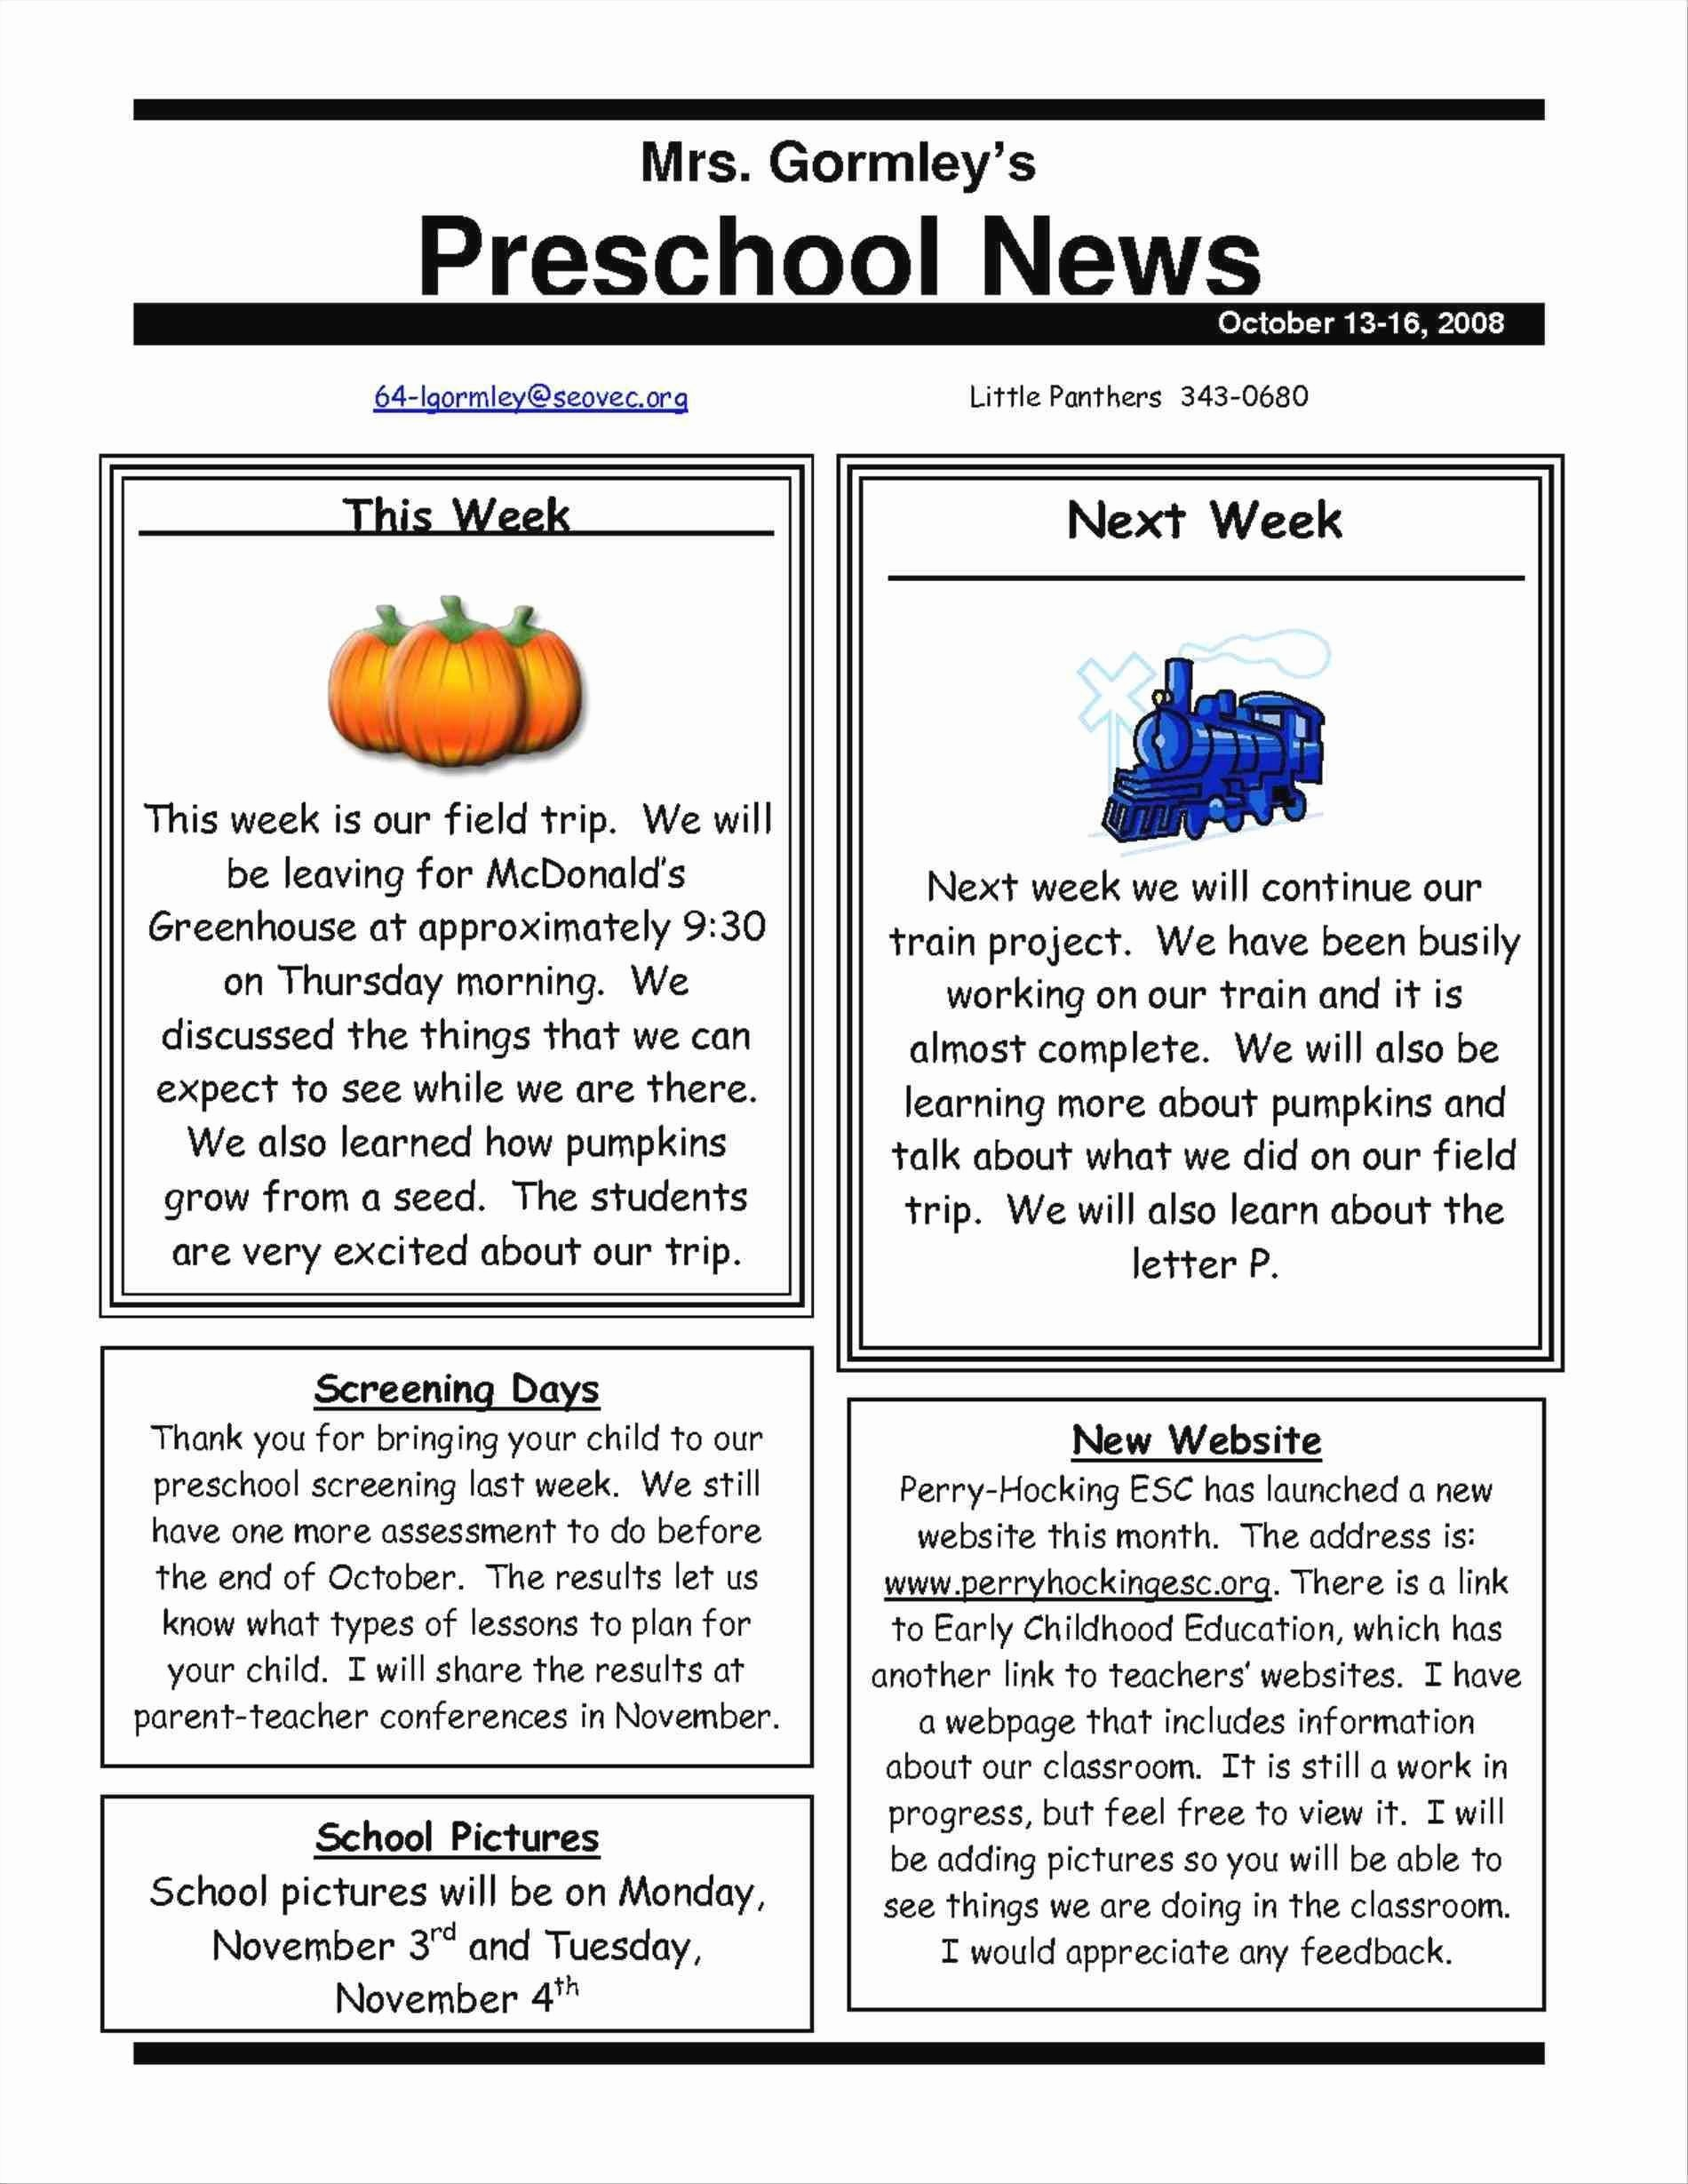 Free Teacher Newsletter Templates Word Inspirational Elegant Free Editable Newsletter Templates for Preschool